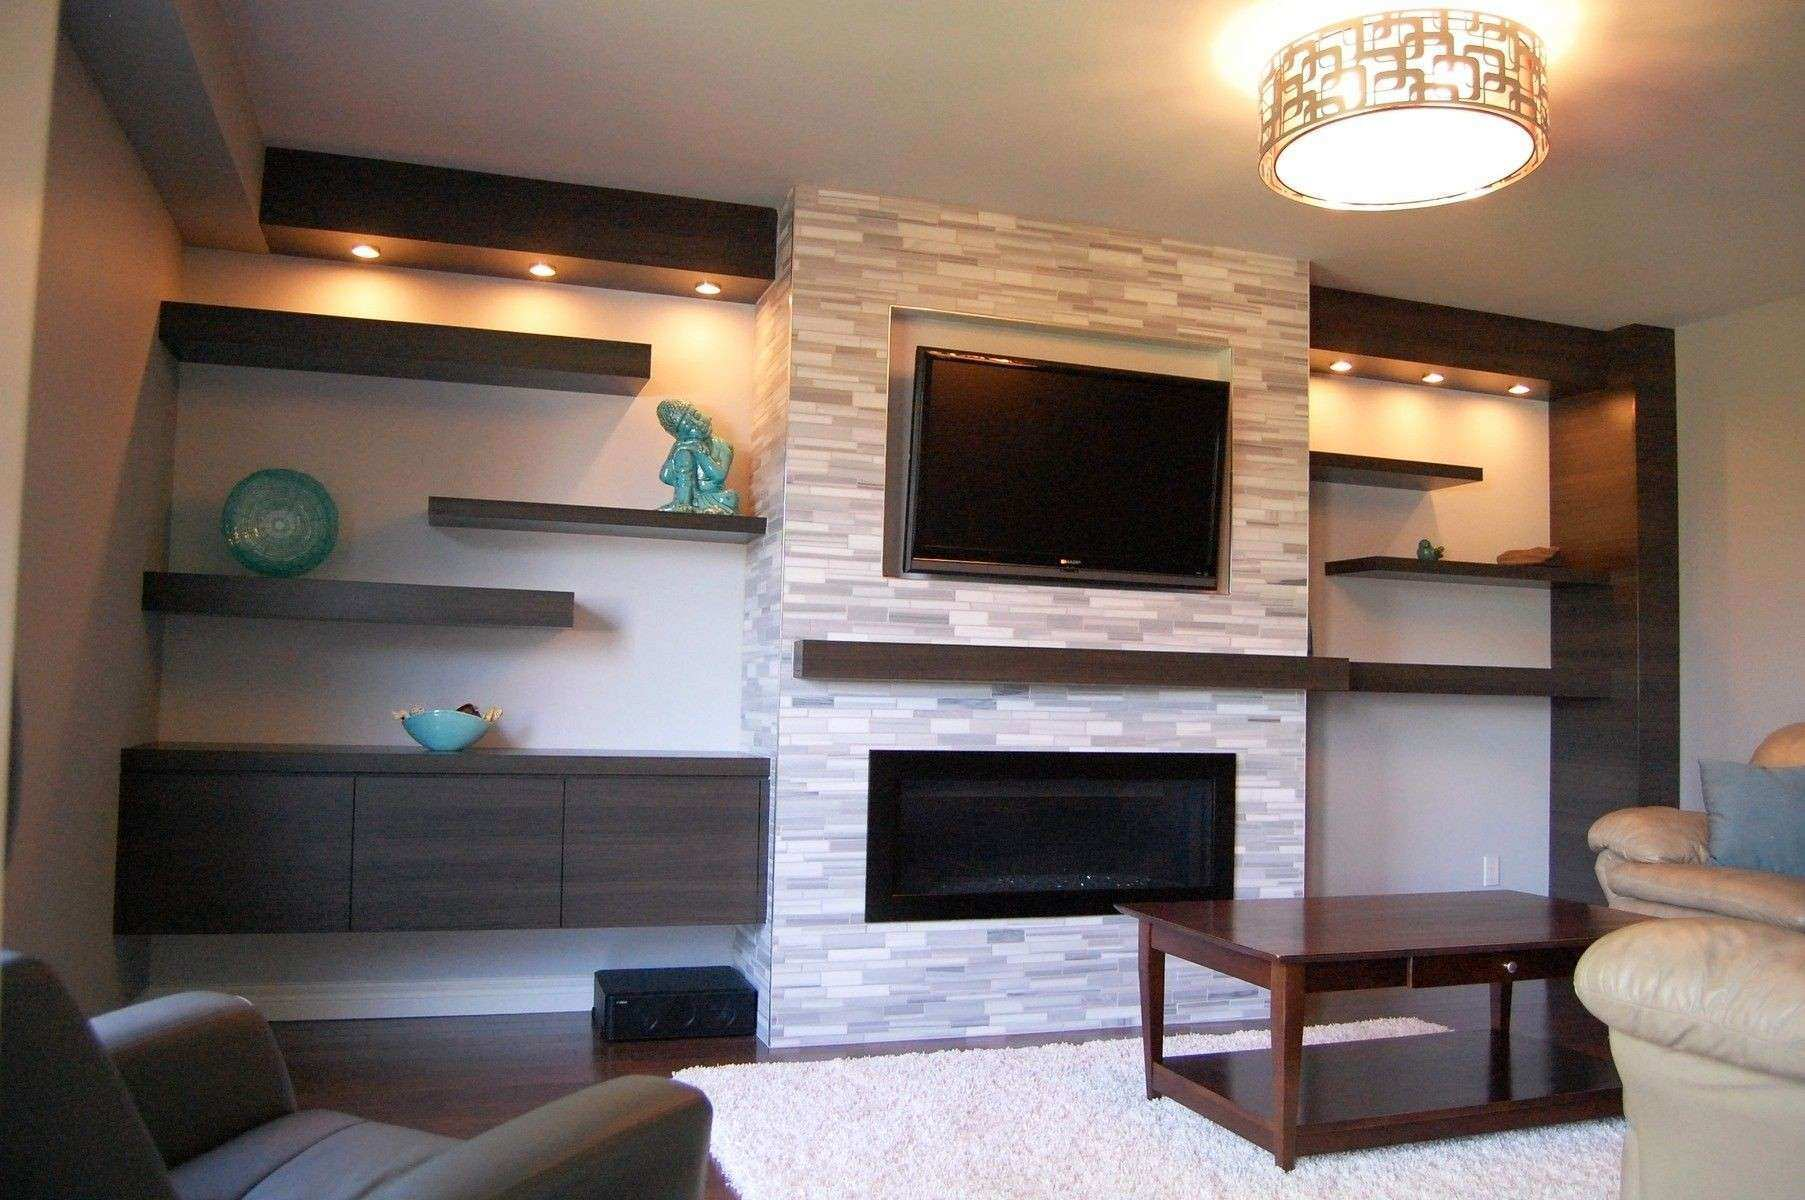 Remarkable Decor Ideas Natural Stone Fireplace With Mounting Tv